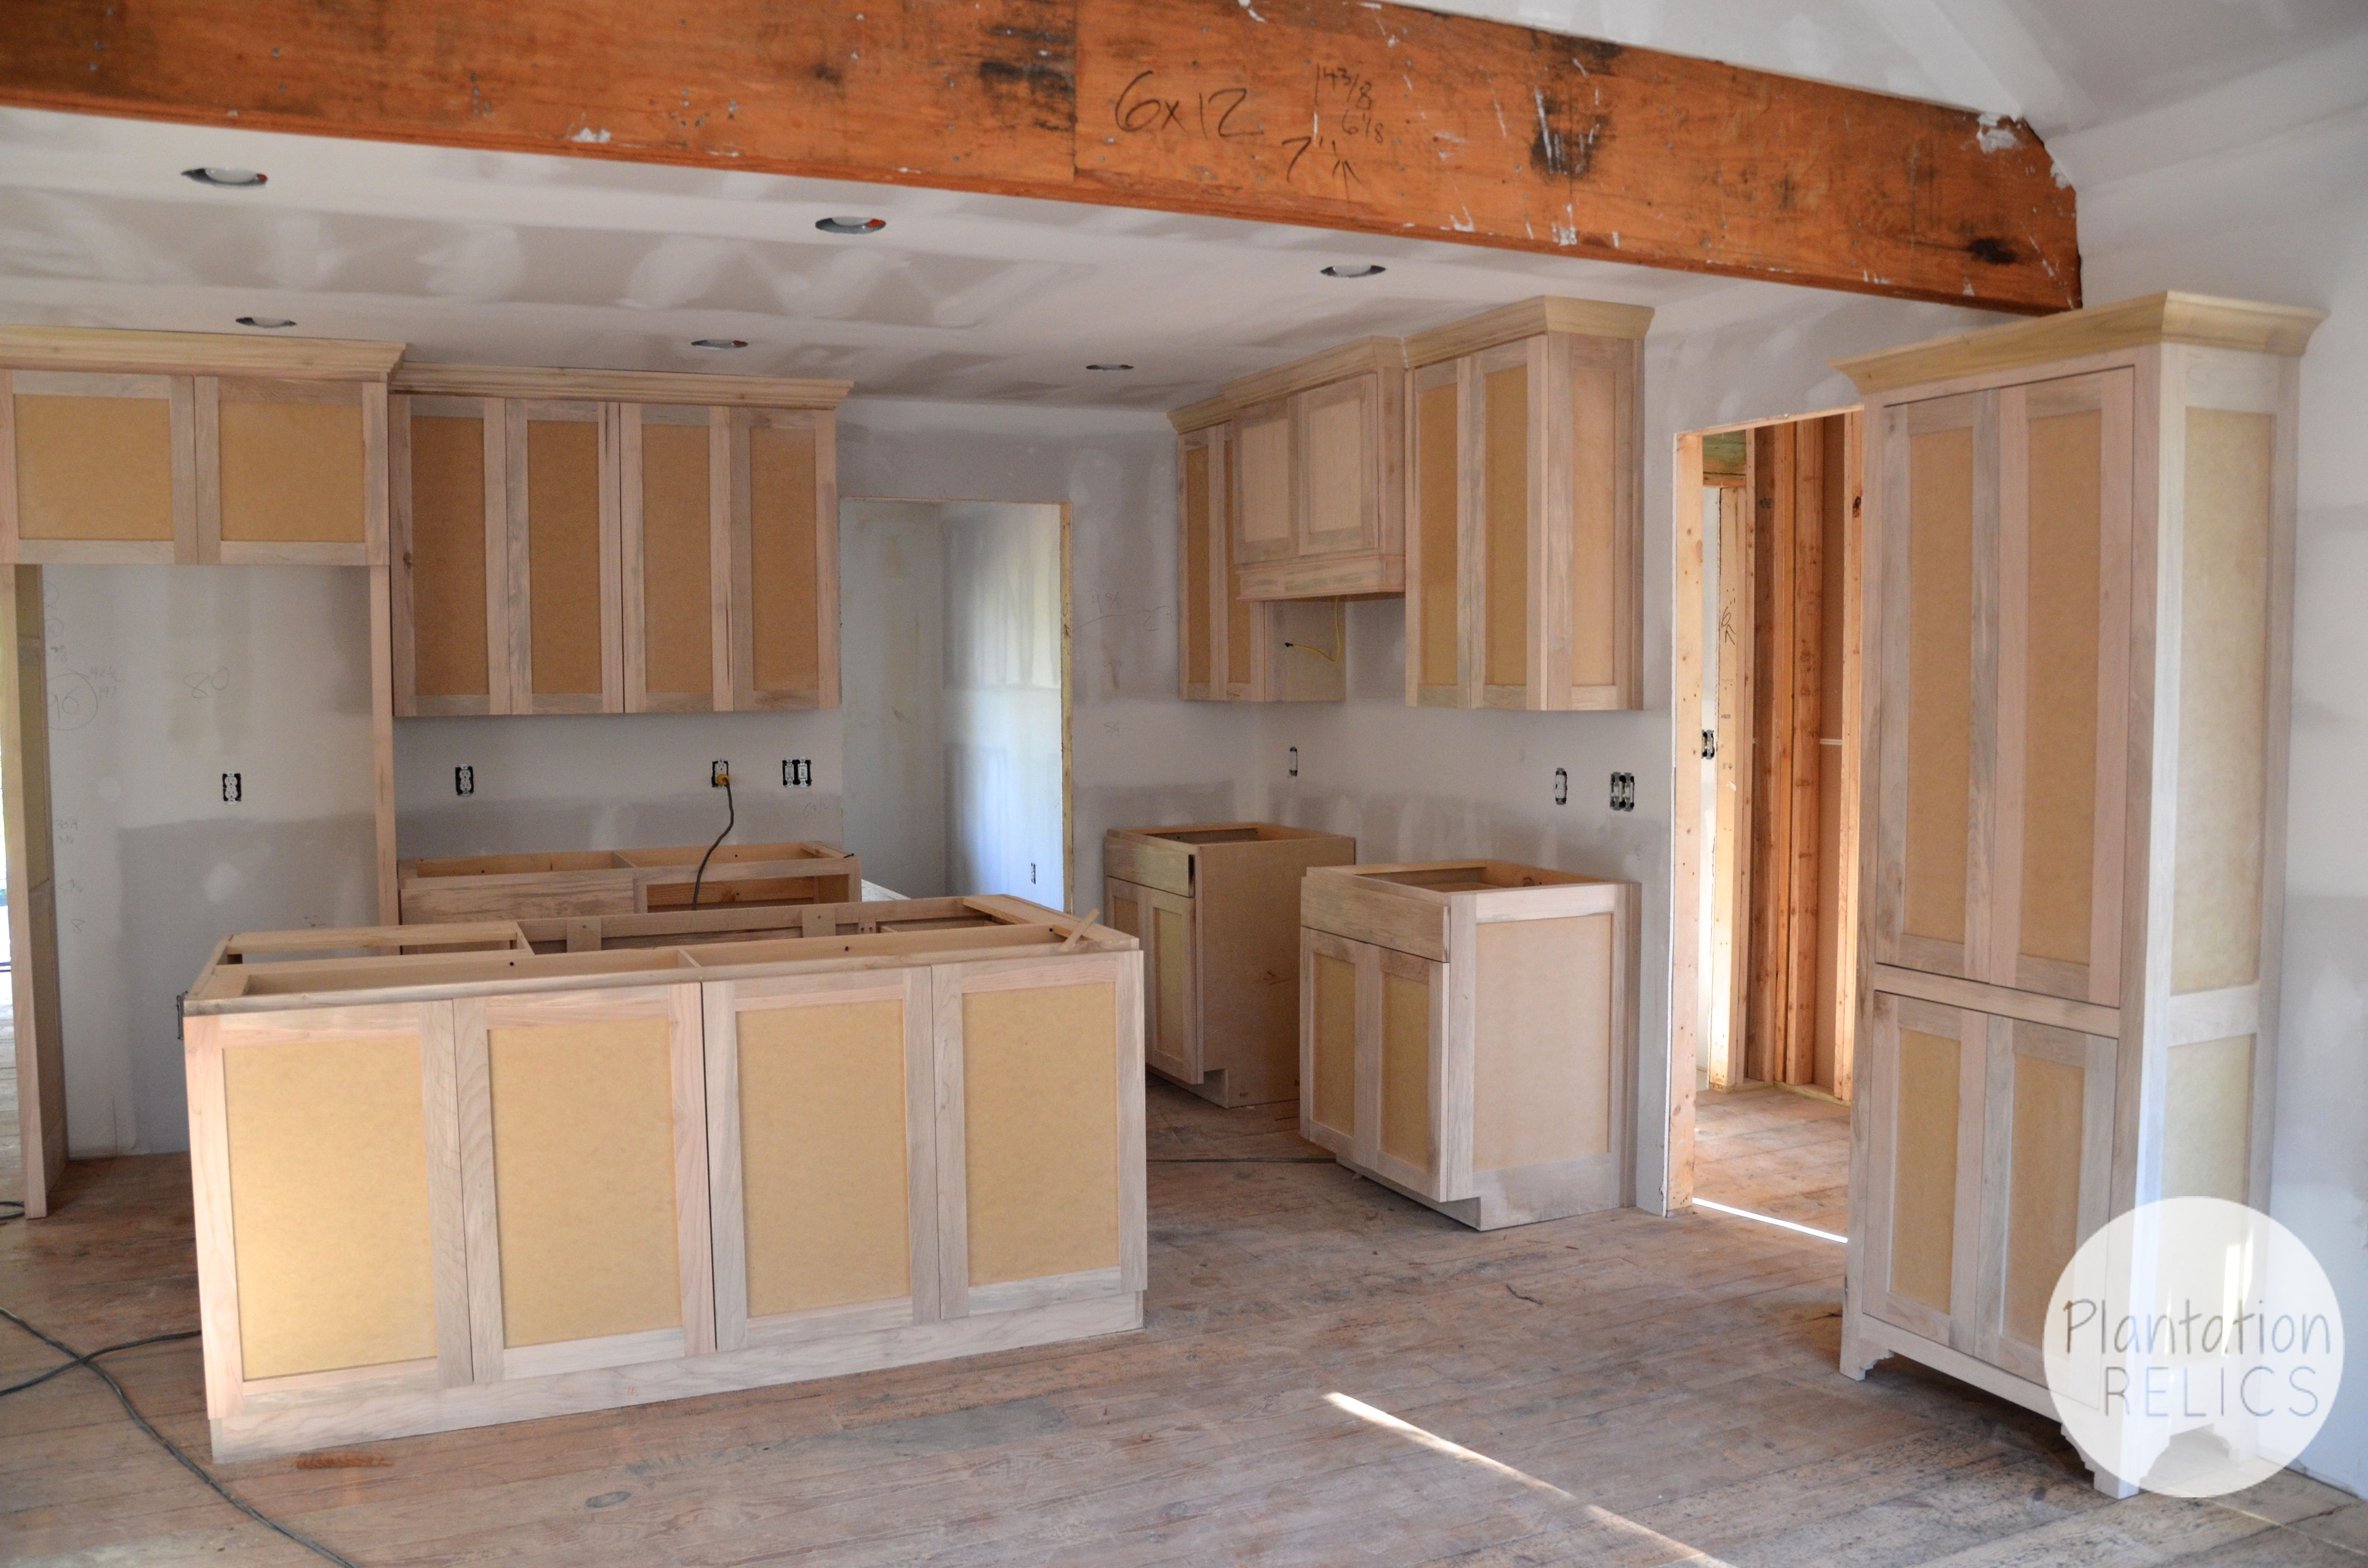 New Kitchen Cabinets Installed In The Flip House & New Kitchen Cabinets Installed In The Flip House | I Wish ...